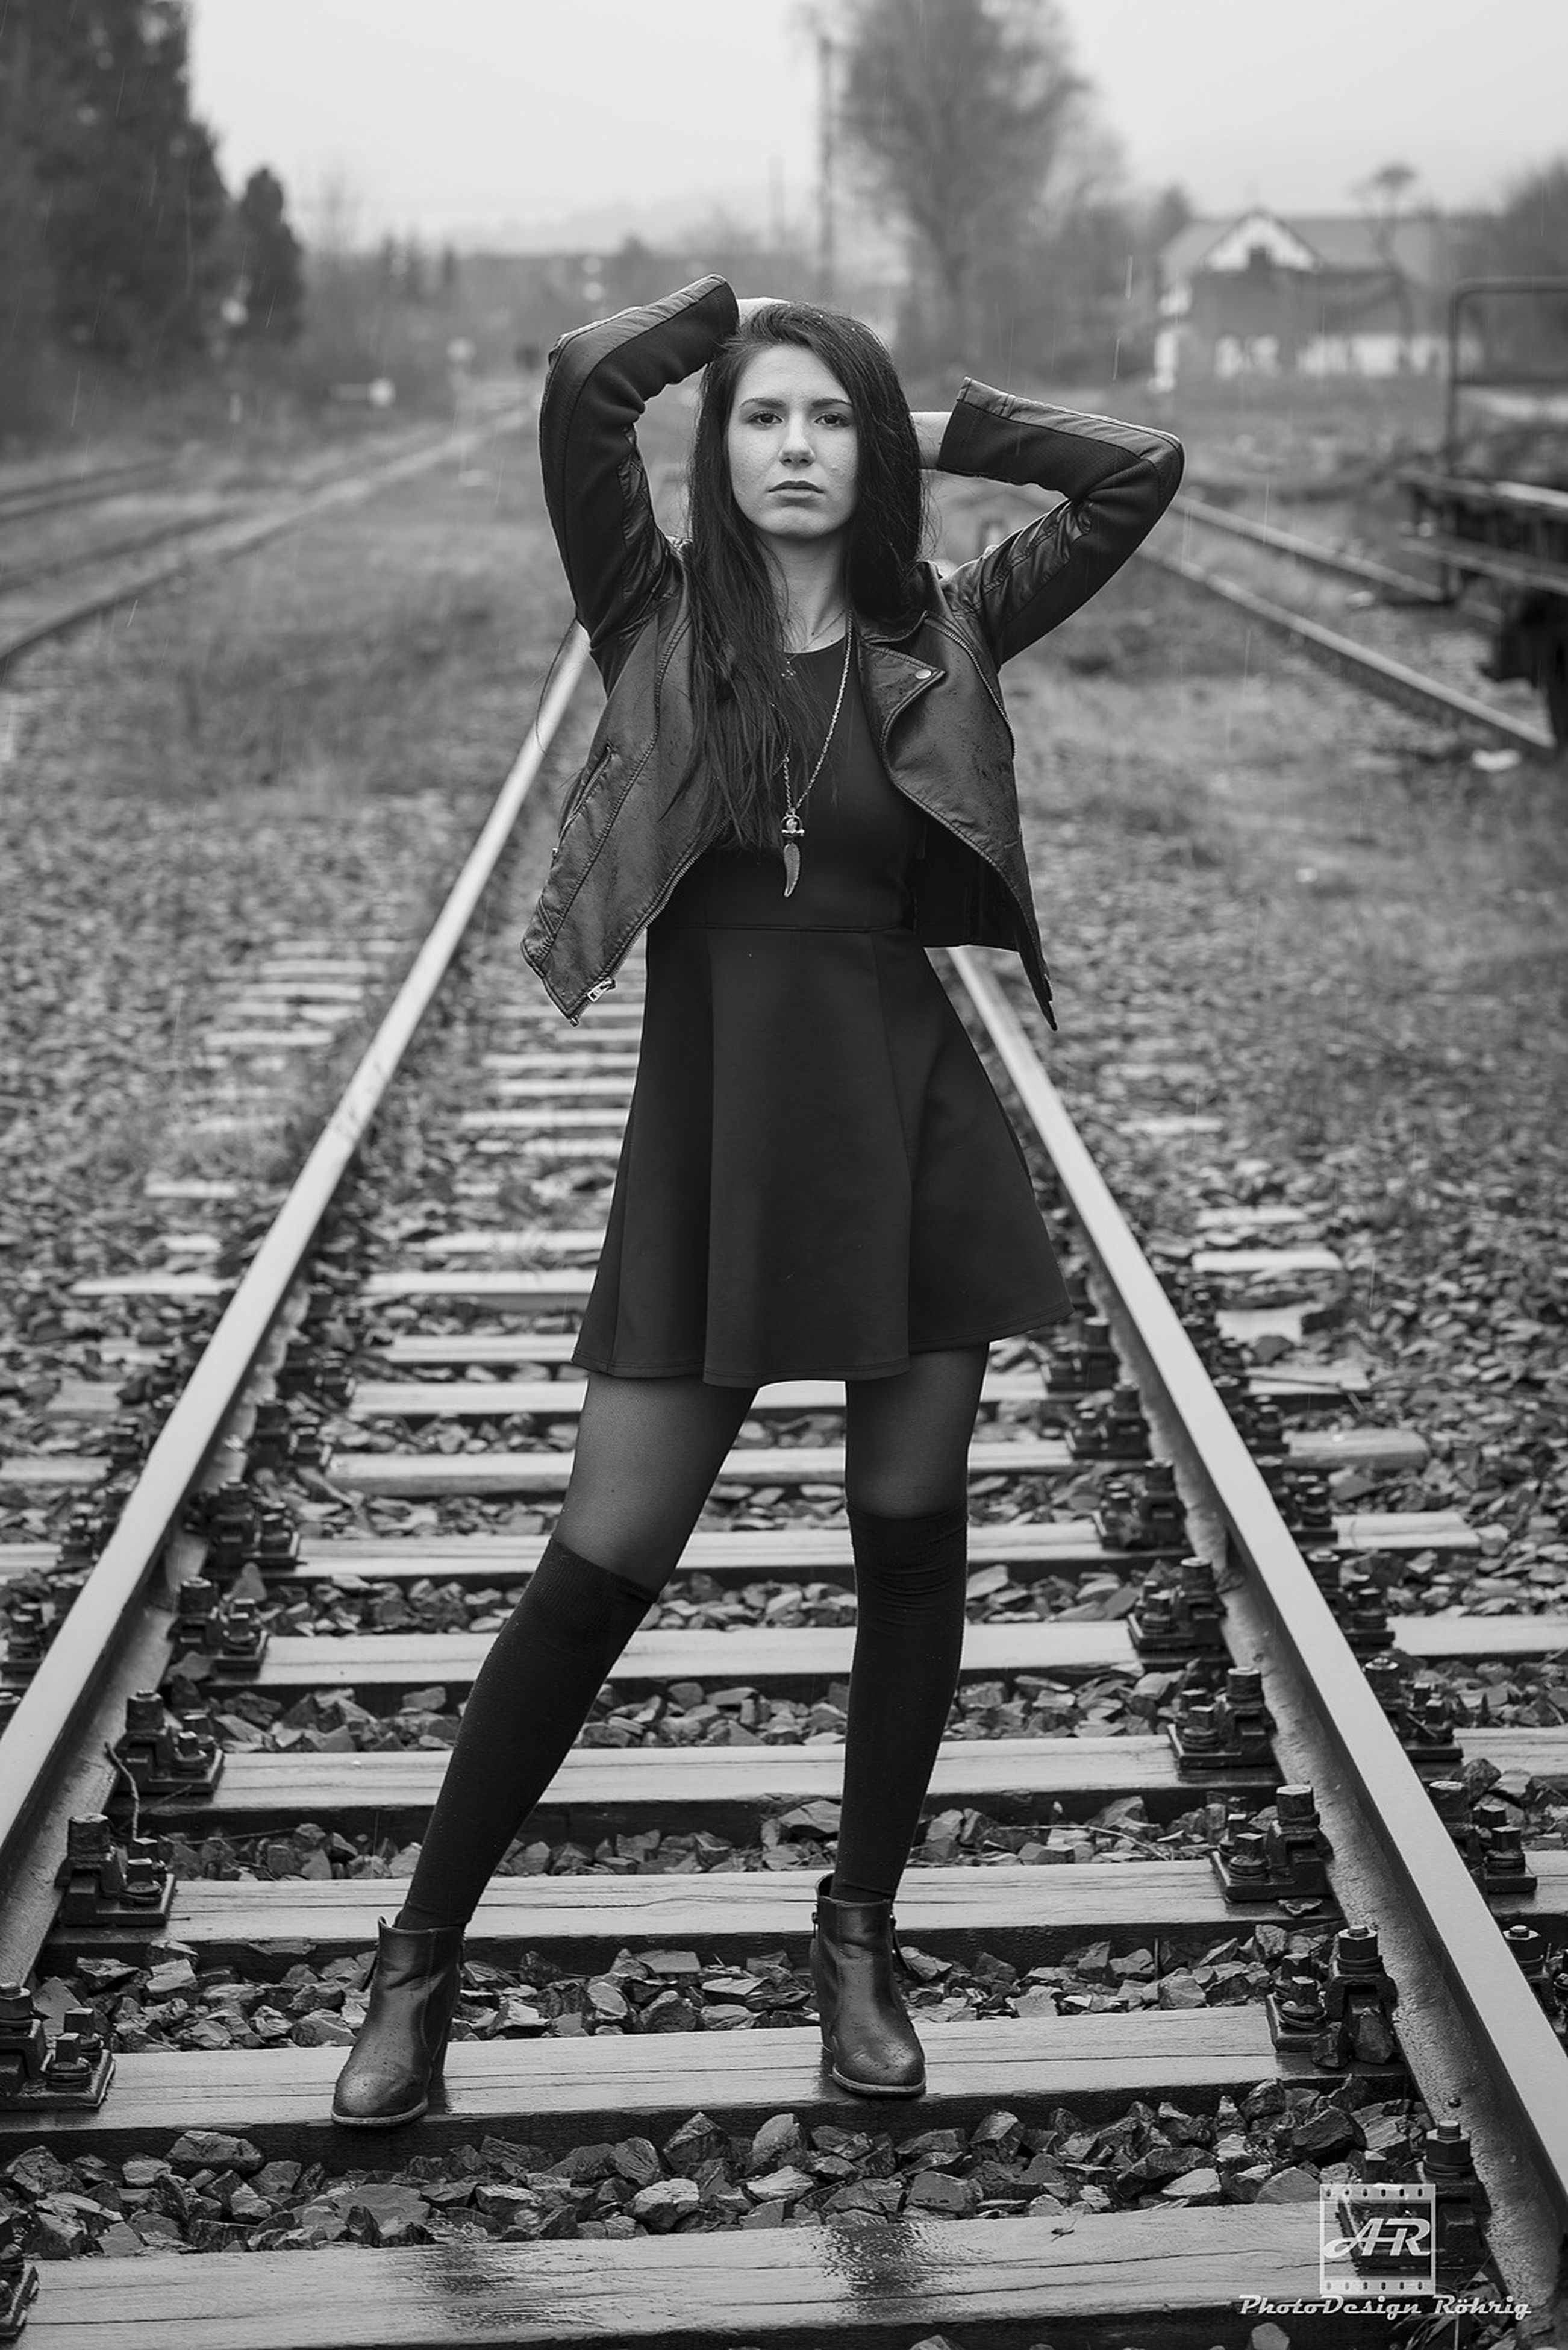 young adult, lifestyles, person, full length, casual clothing, young women, leisure activity, standing, front view, looking at camera, portrait, railroad track, transportation, three quarter length, railing, smiling, day